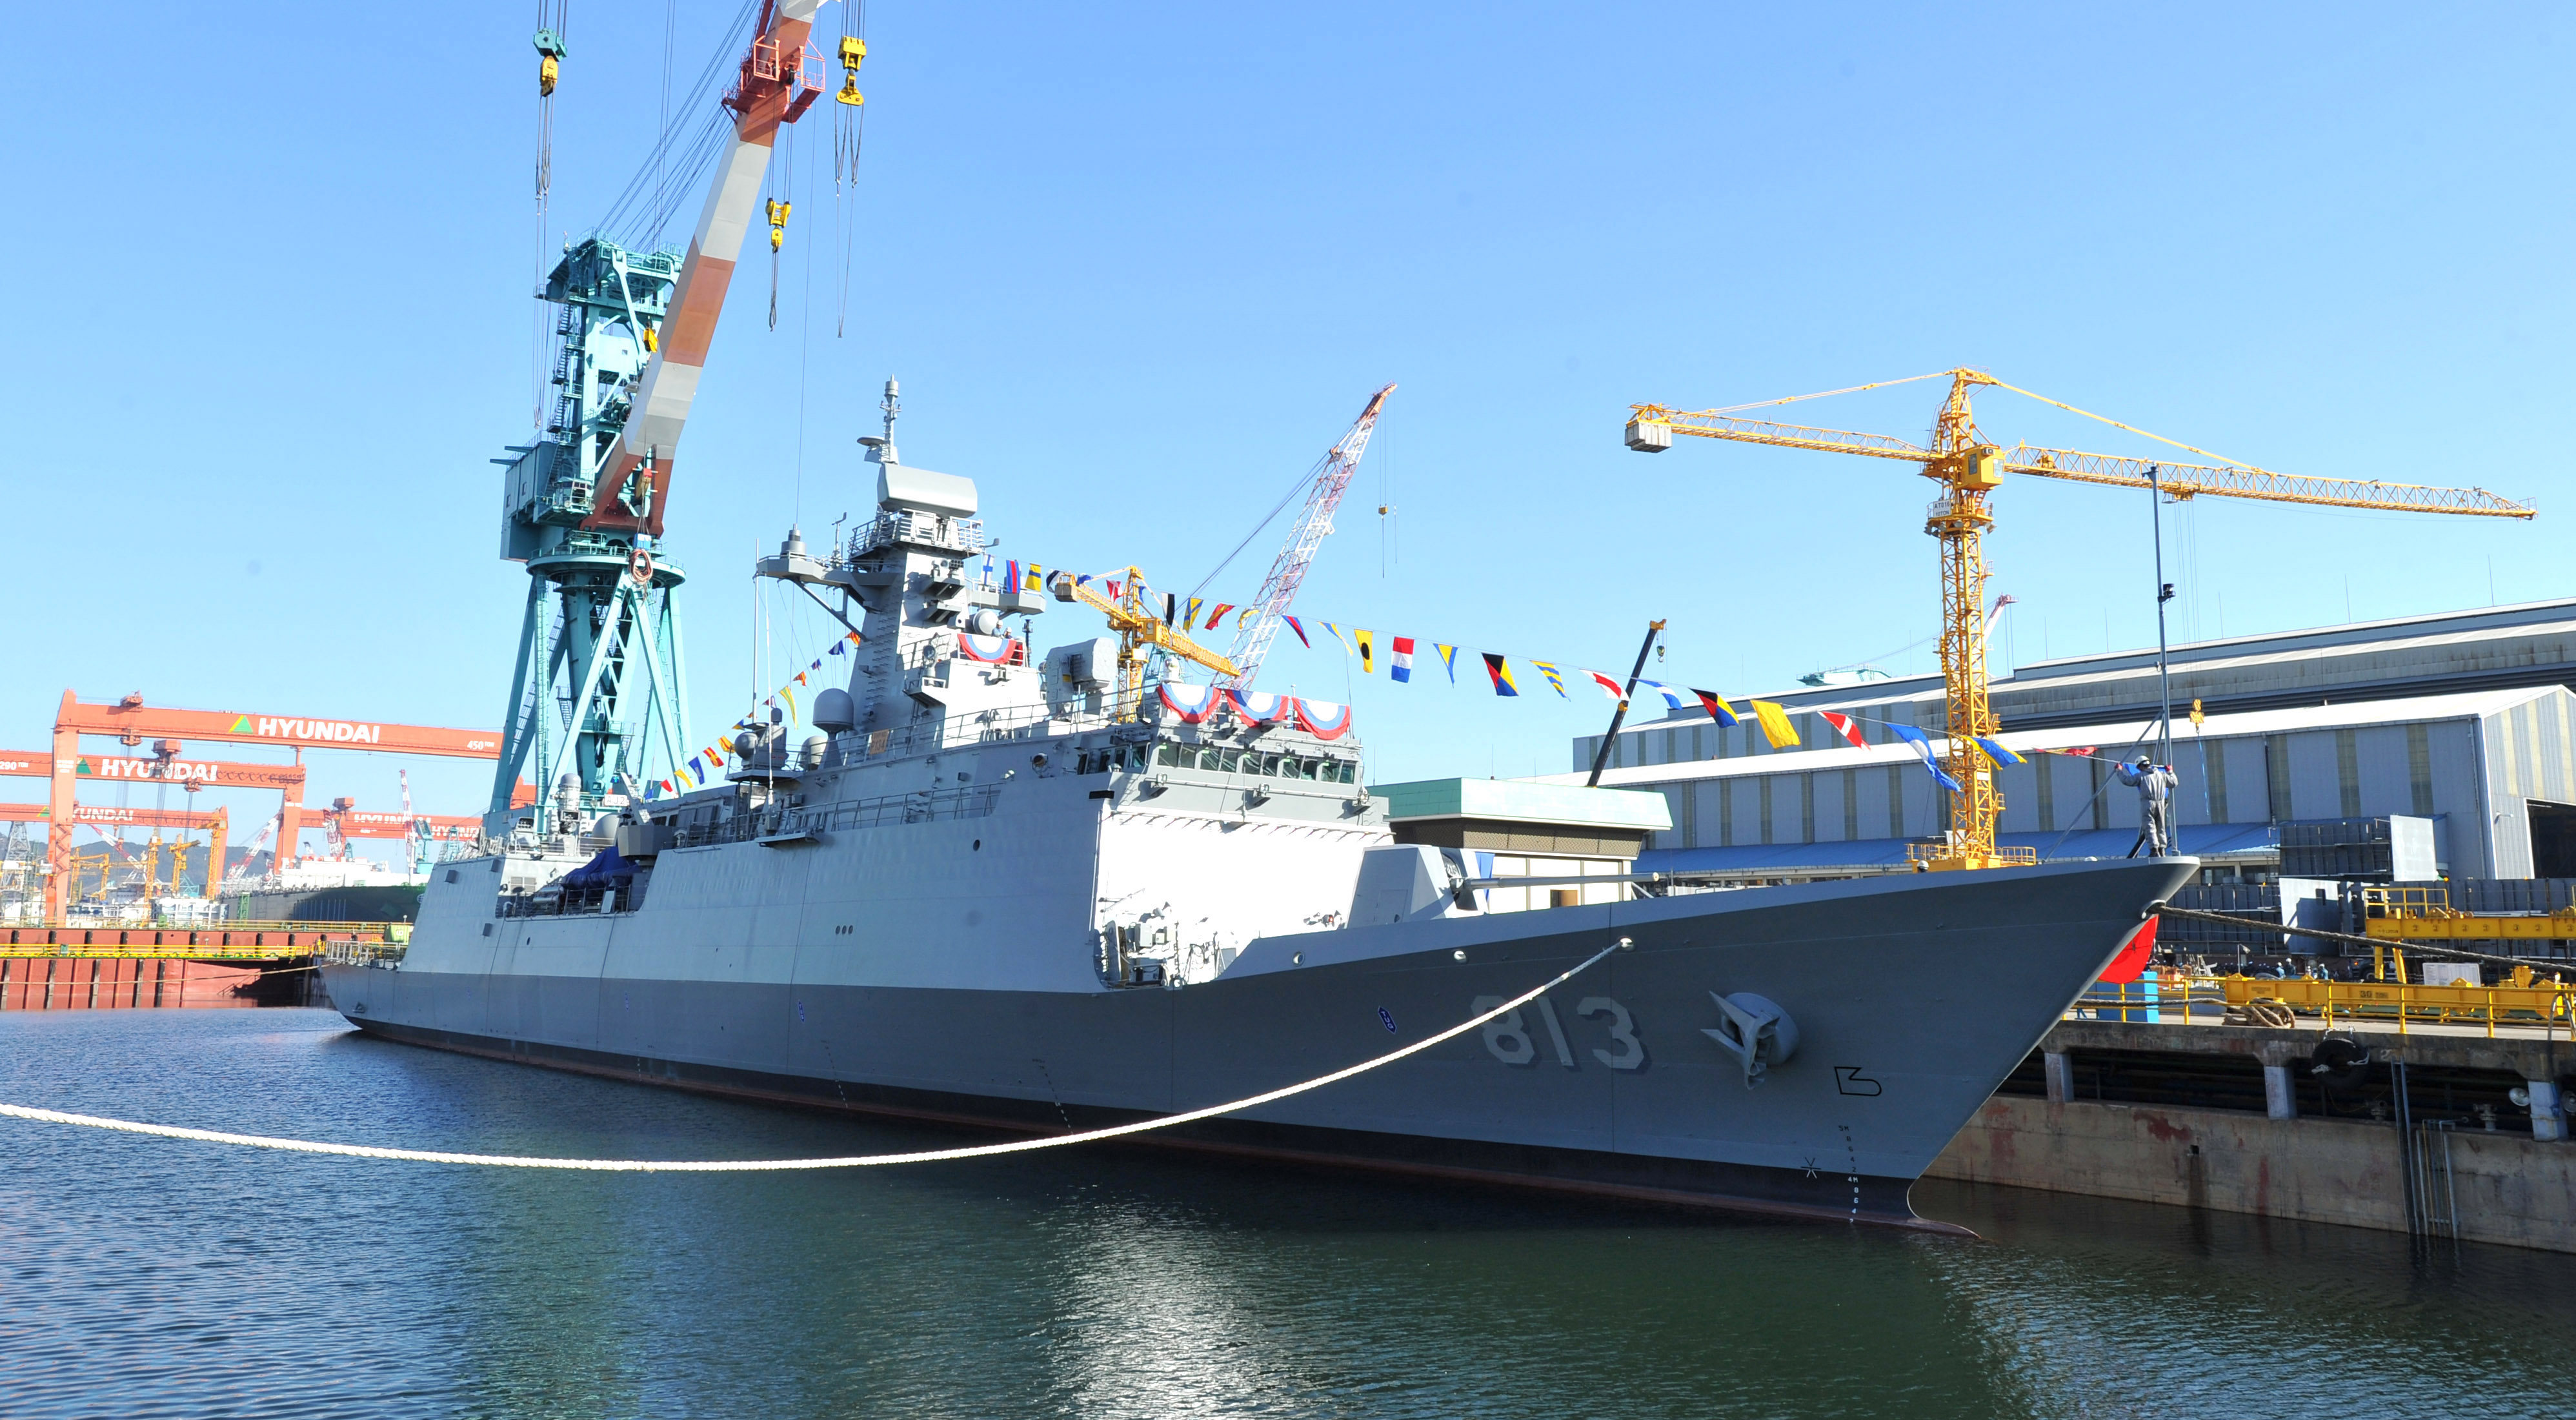 The ROKN's 'Incheon' class frigates